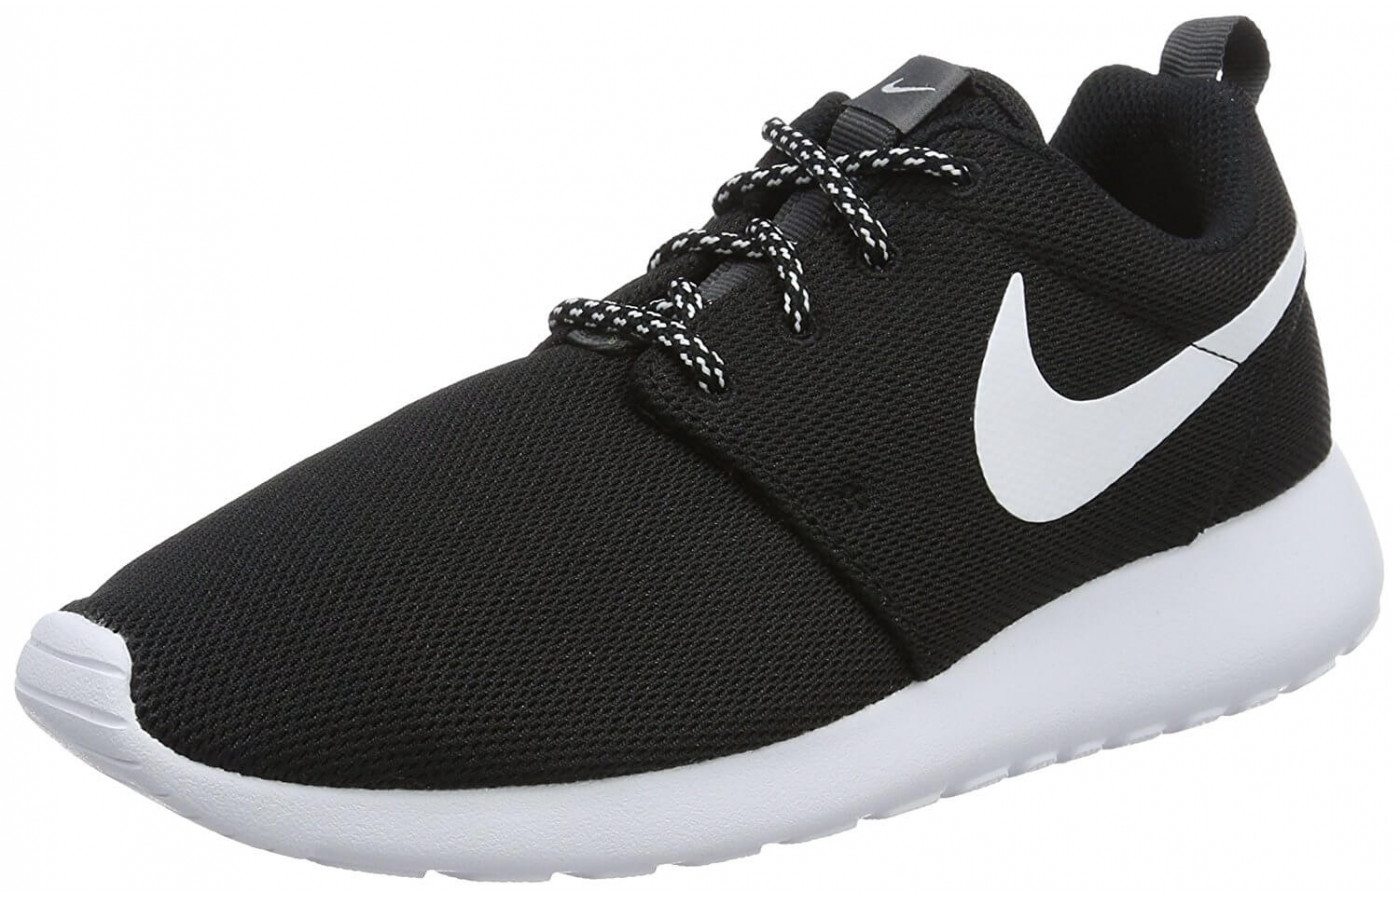 347e10061384 Nike Roshe One Reviewed - To Buy or Not in May 2019